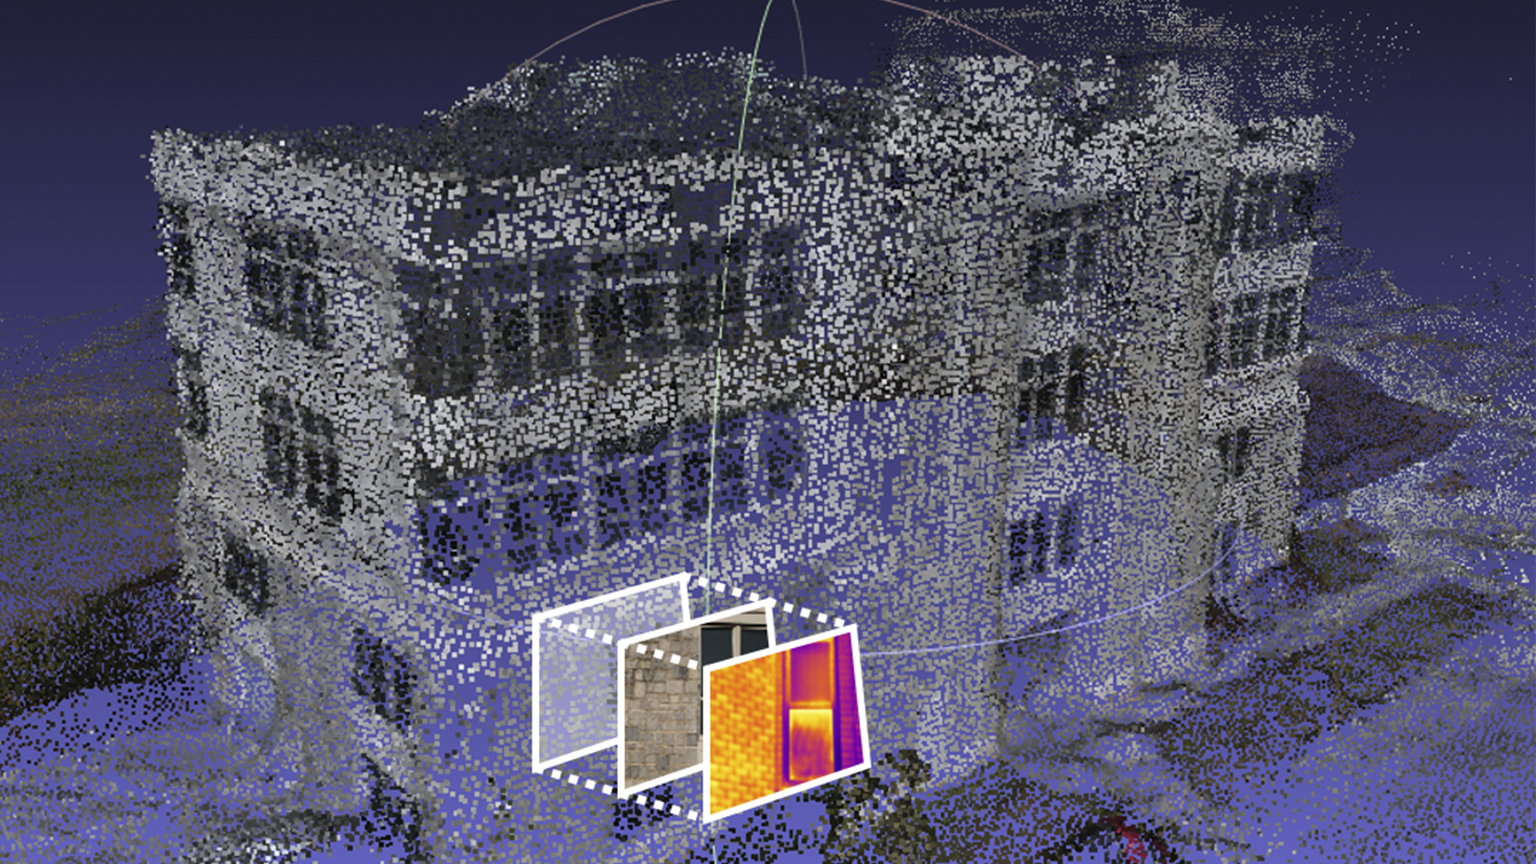 The 3D cloud point was reconstructed with its local coordinate system by using photogrammetry techniques to process UAV-images captured in a spiral flight path. The location (3D coordinates in the local coordinate system) of the RGB and IR images for close-range façade inspection were identified by the proposed image matching and transformation algorithms.